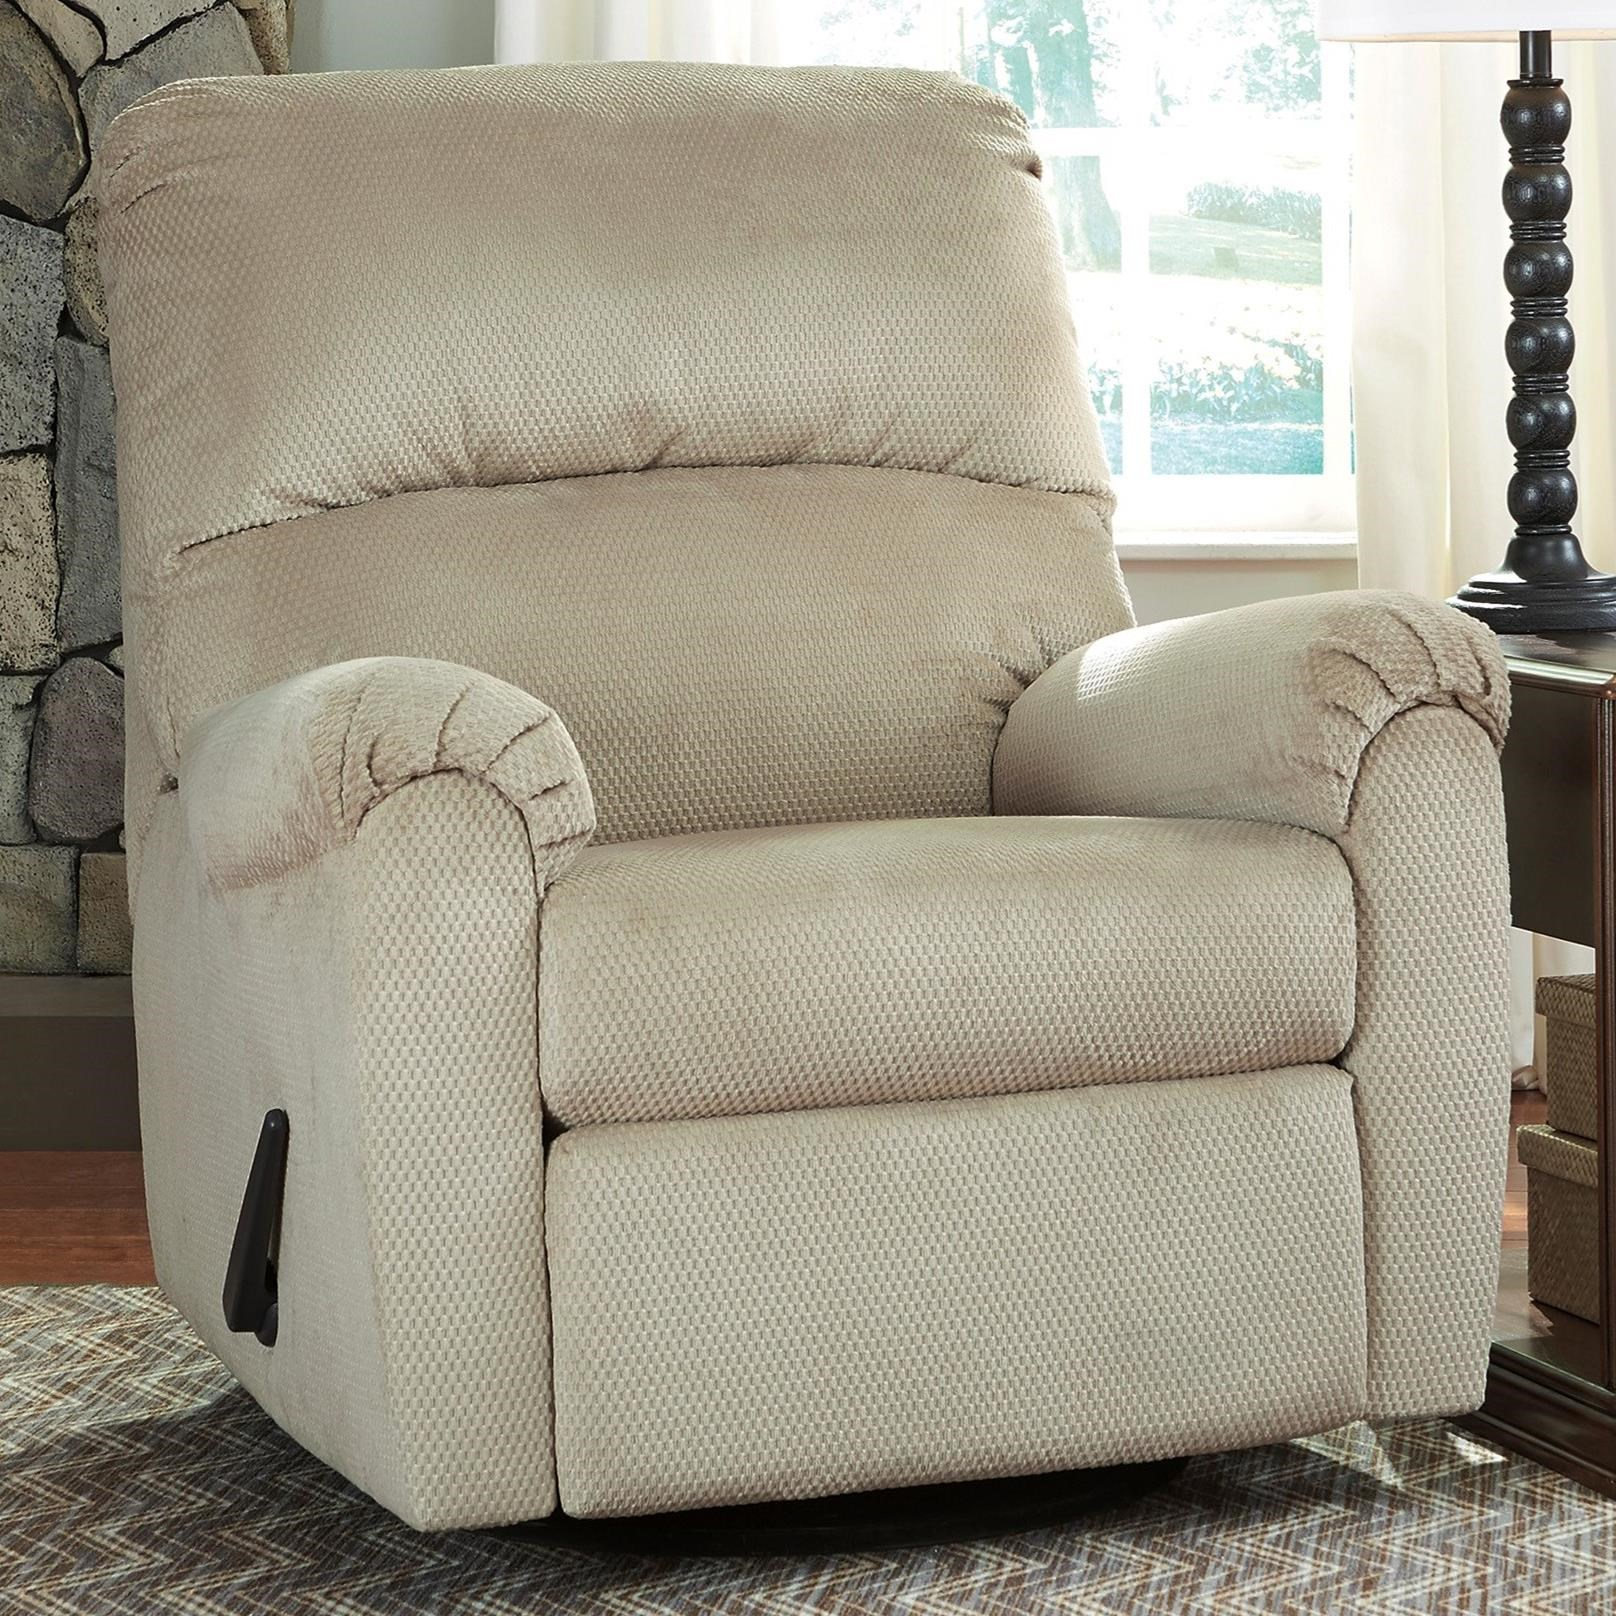 Signature Design by Ashley Bronwyn Swivel Glider Recliner - Item Number 2600361 & Signature Design by Ashley Bronwyn Swivel Glider Recliner with 360 ... islam-shia.org